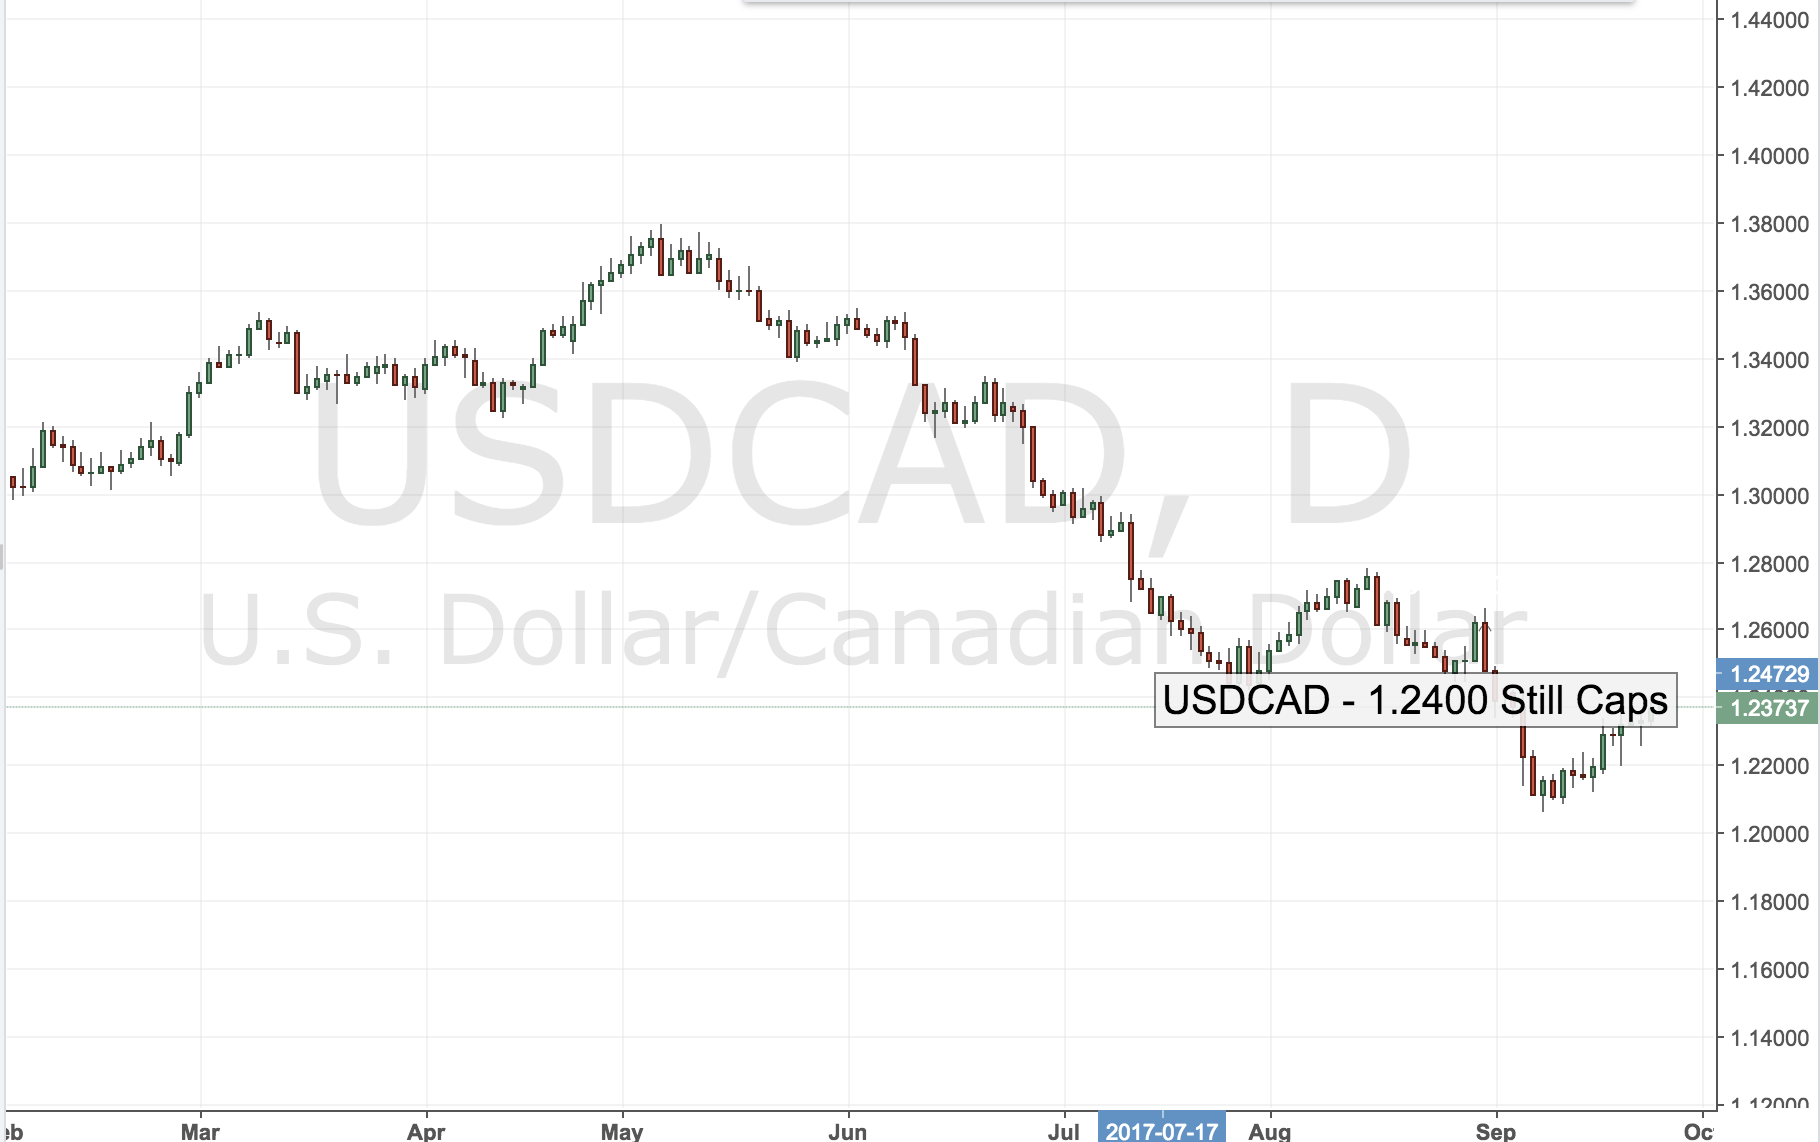 USDCAD – 1.2400 Still Caps